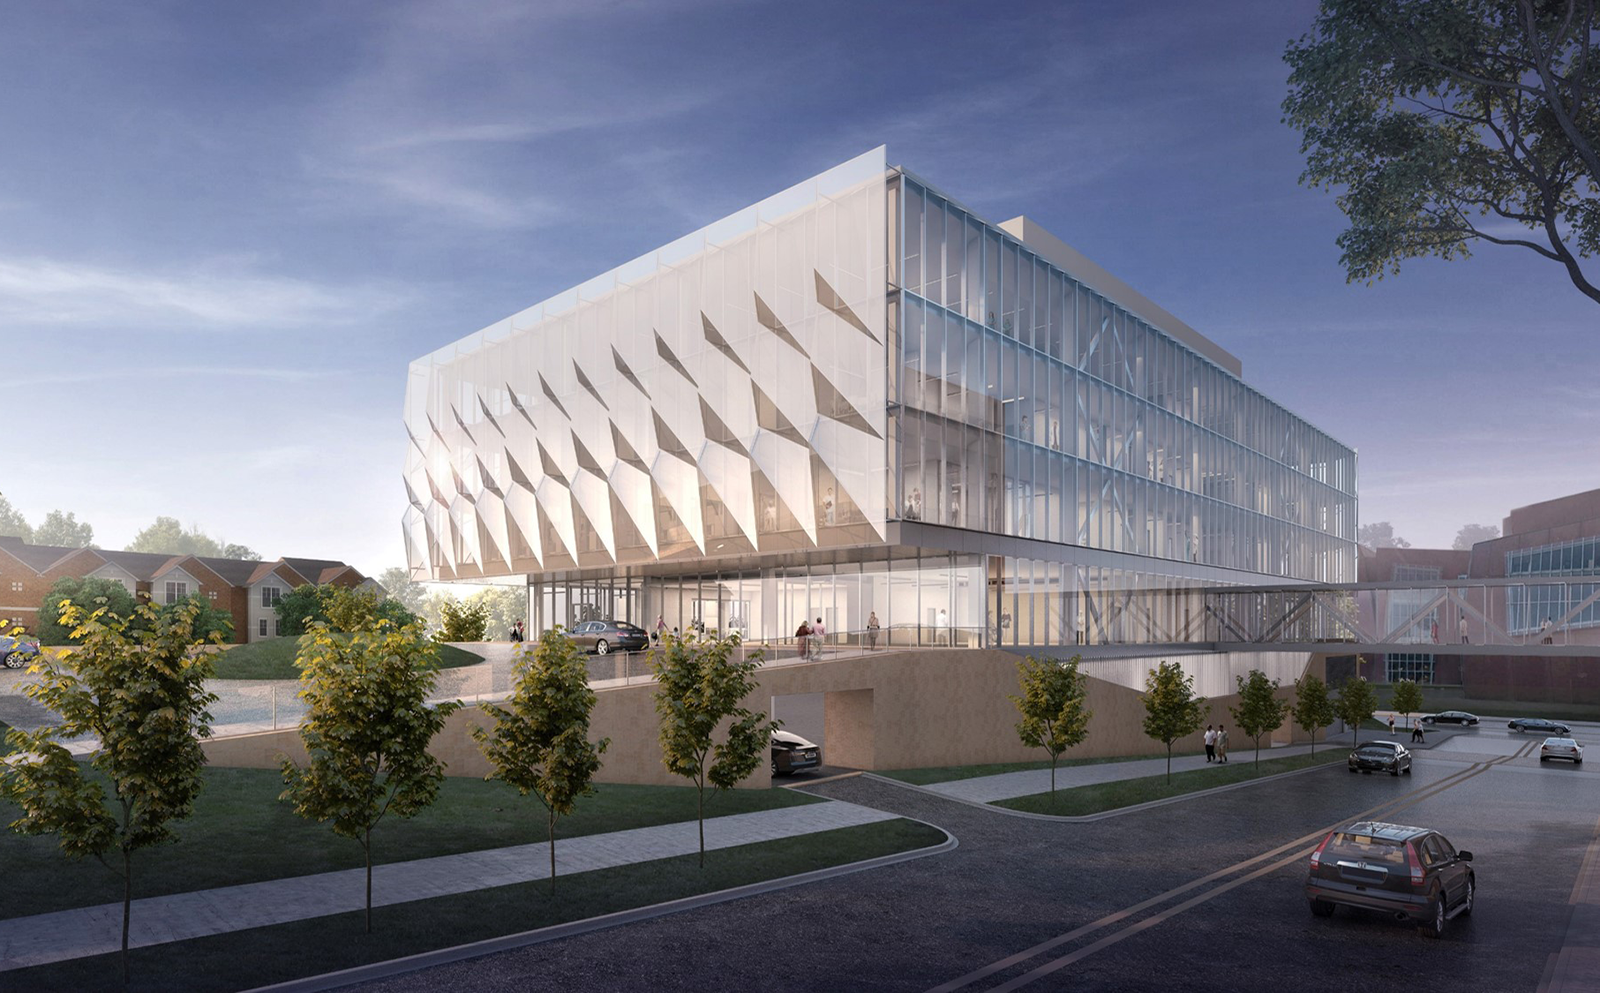 Rendering of the new UC Gardner Neuroscience Institute